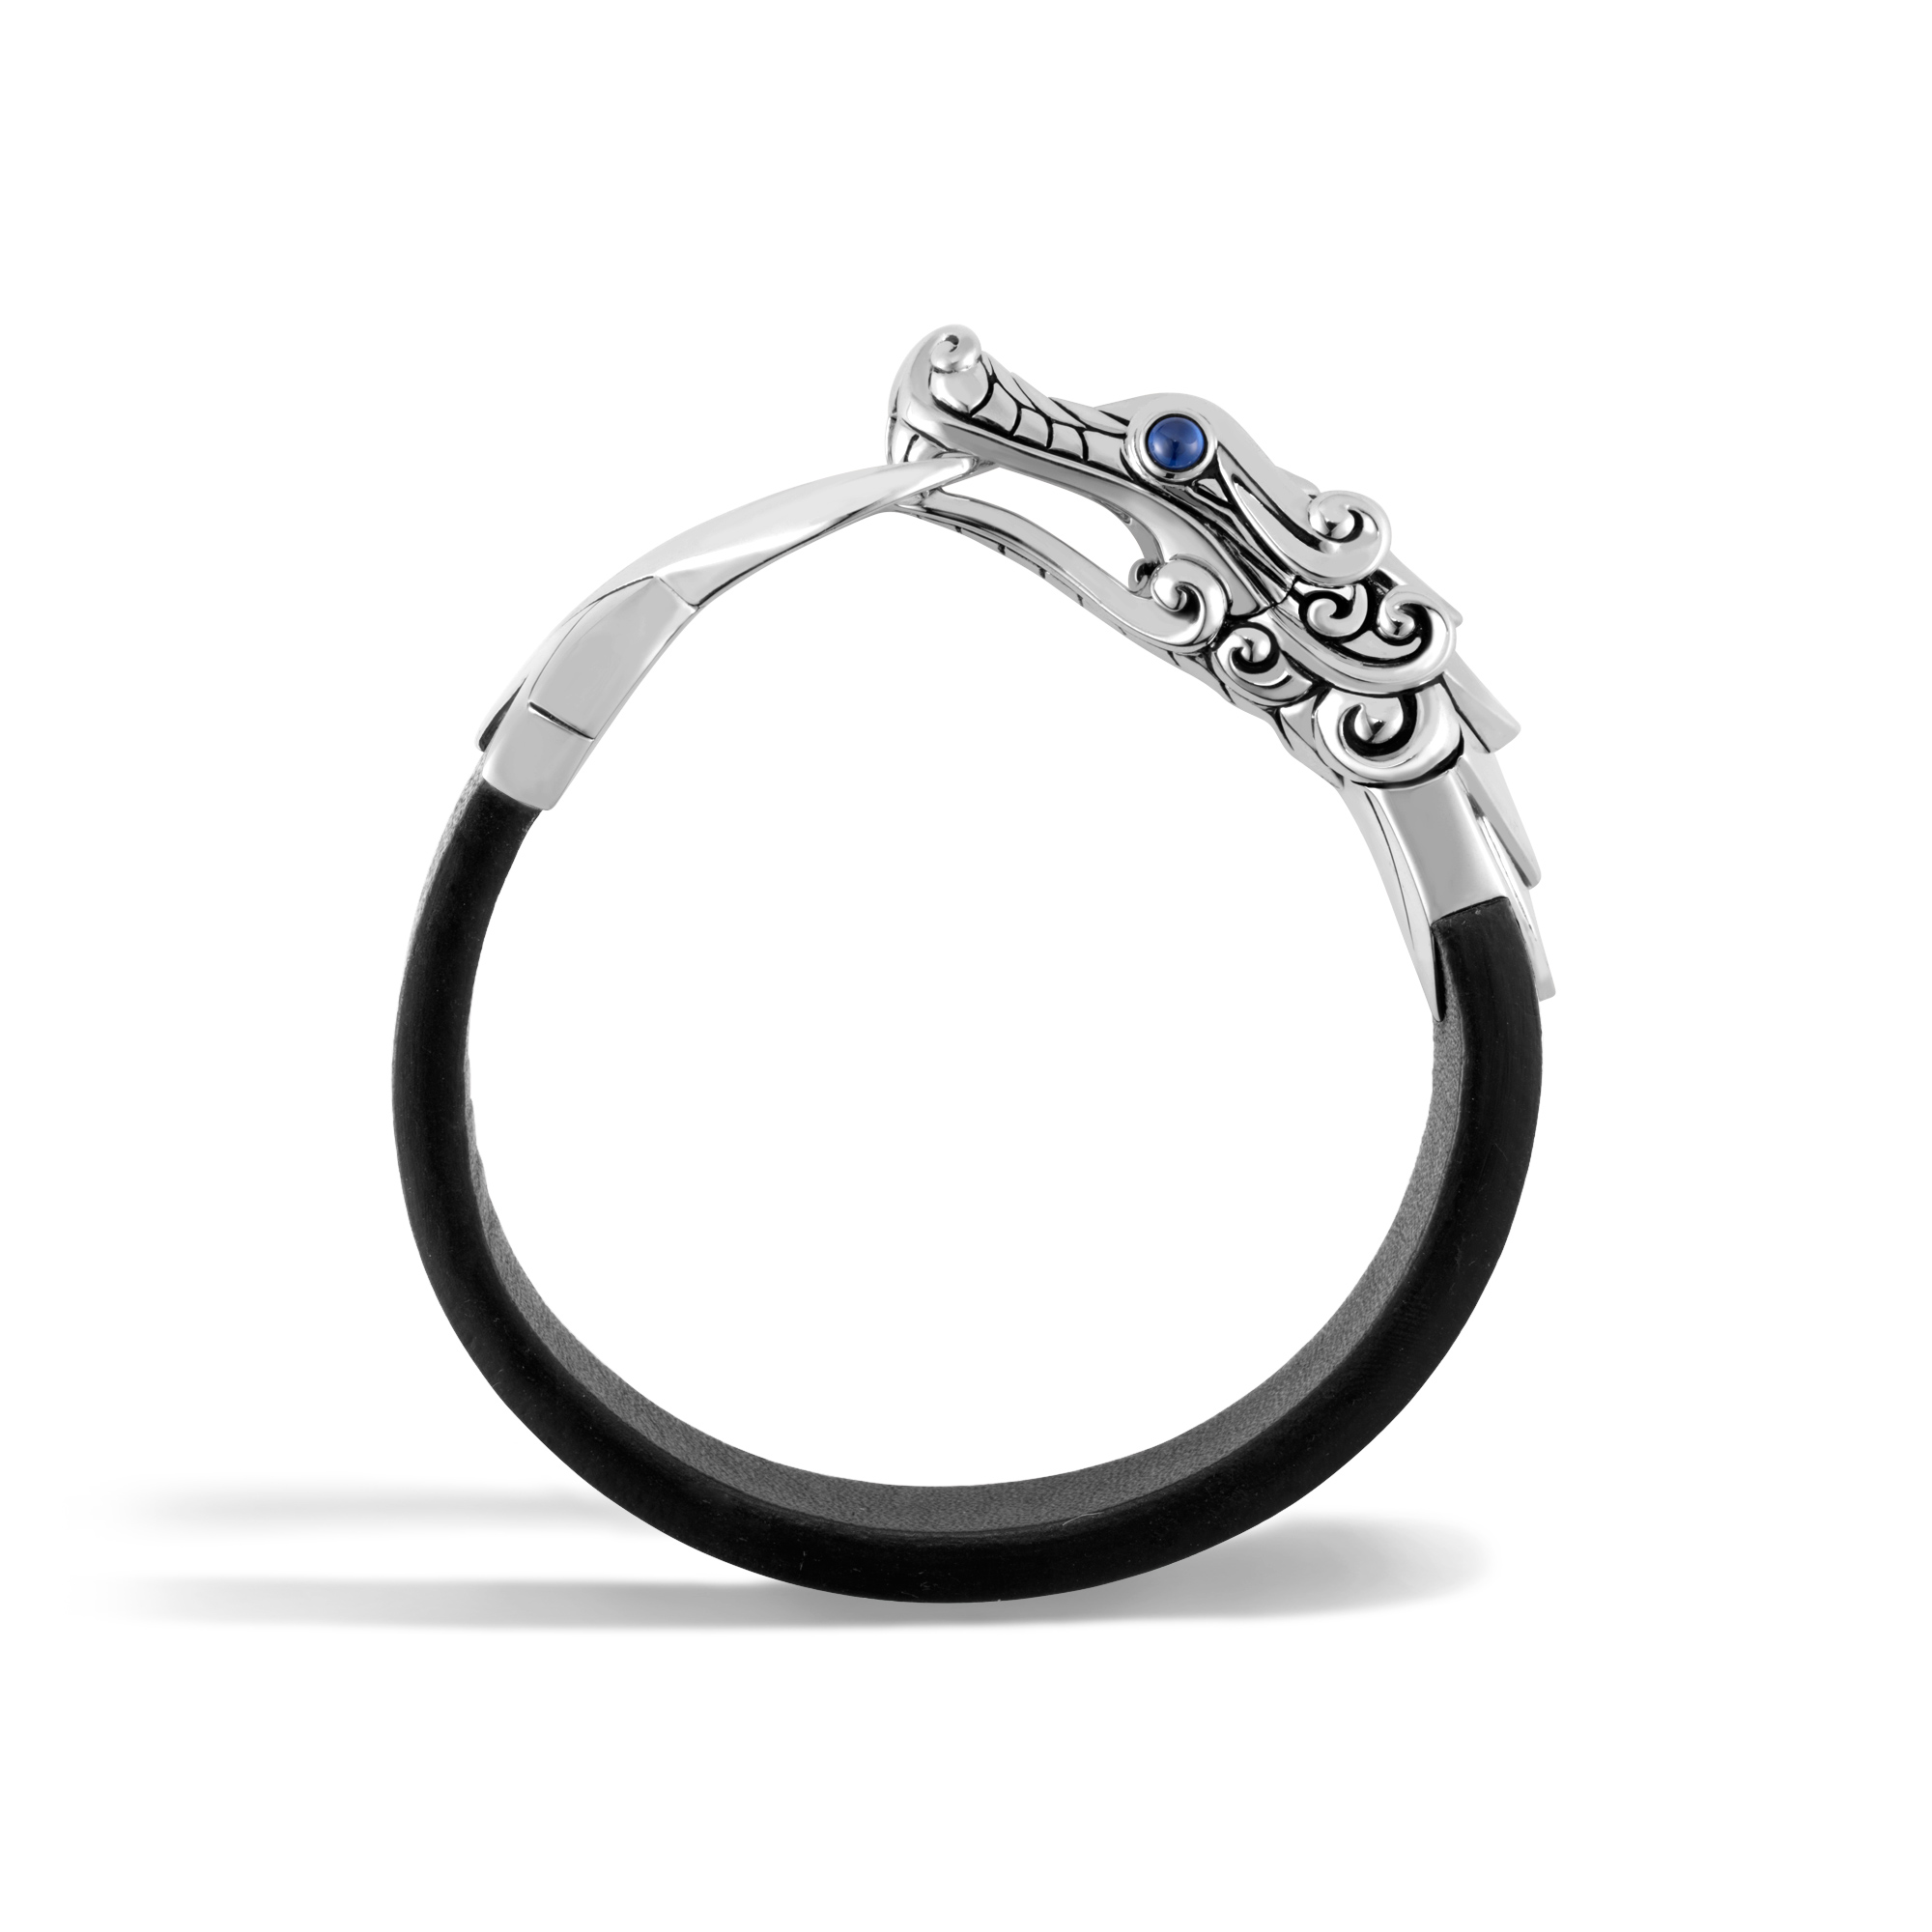 Legends Naga 15MM Bracelet in Silver and Leather, Blue Sapphire, large